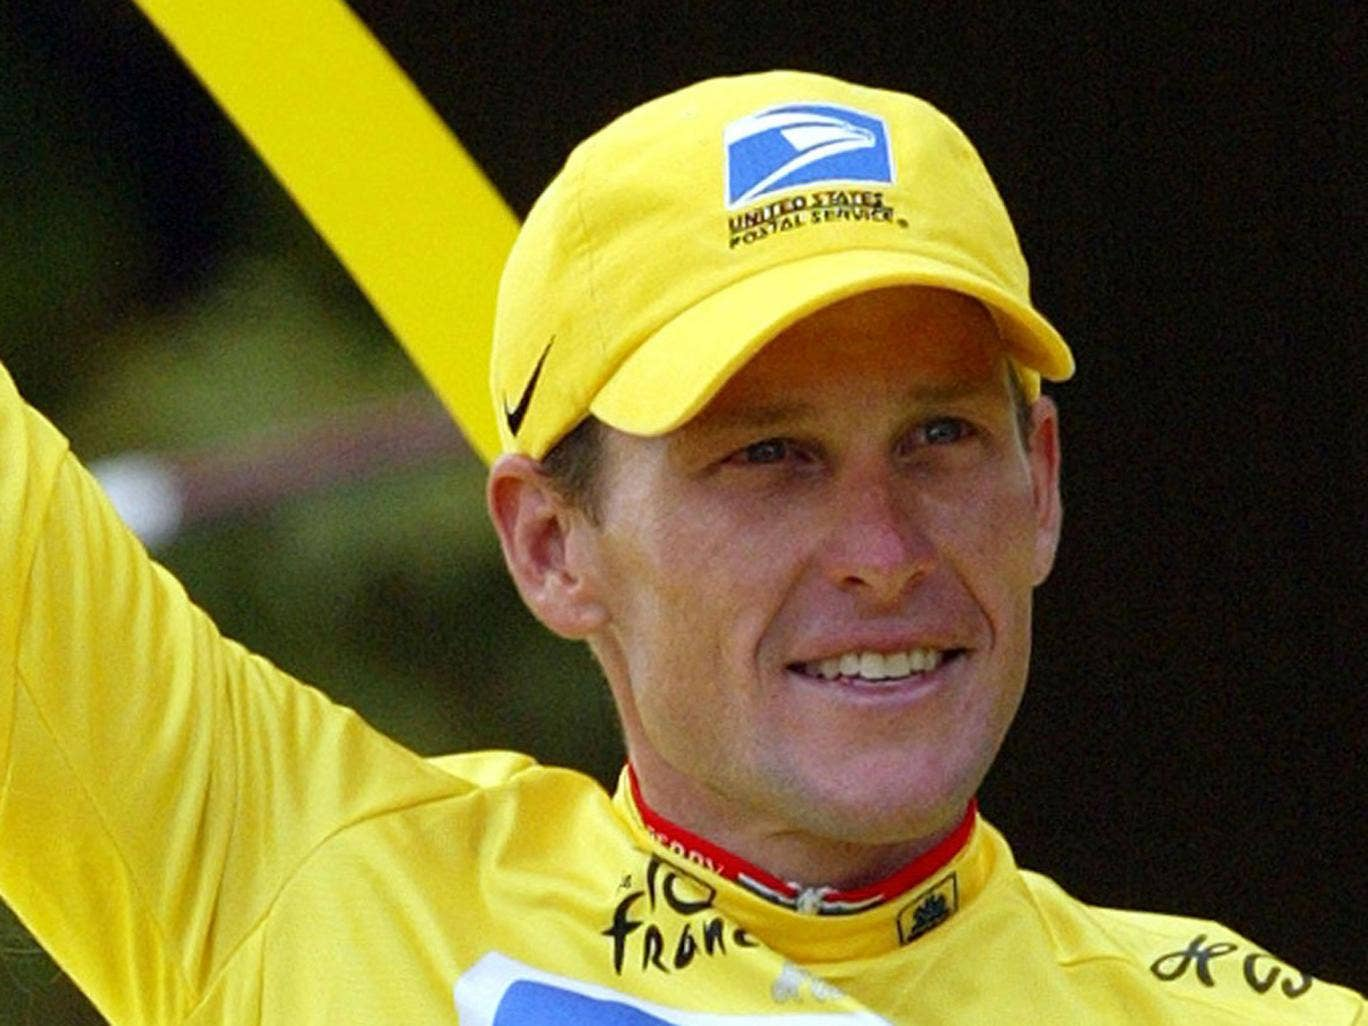 Fresh evidence has emerged about Armstrong's doping that raises further questions about the UCI's involvement in the scandal